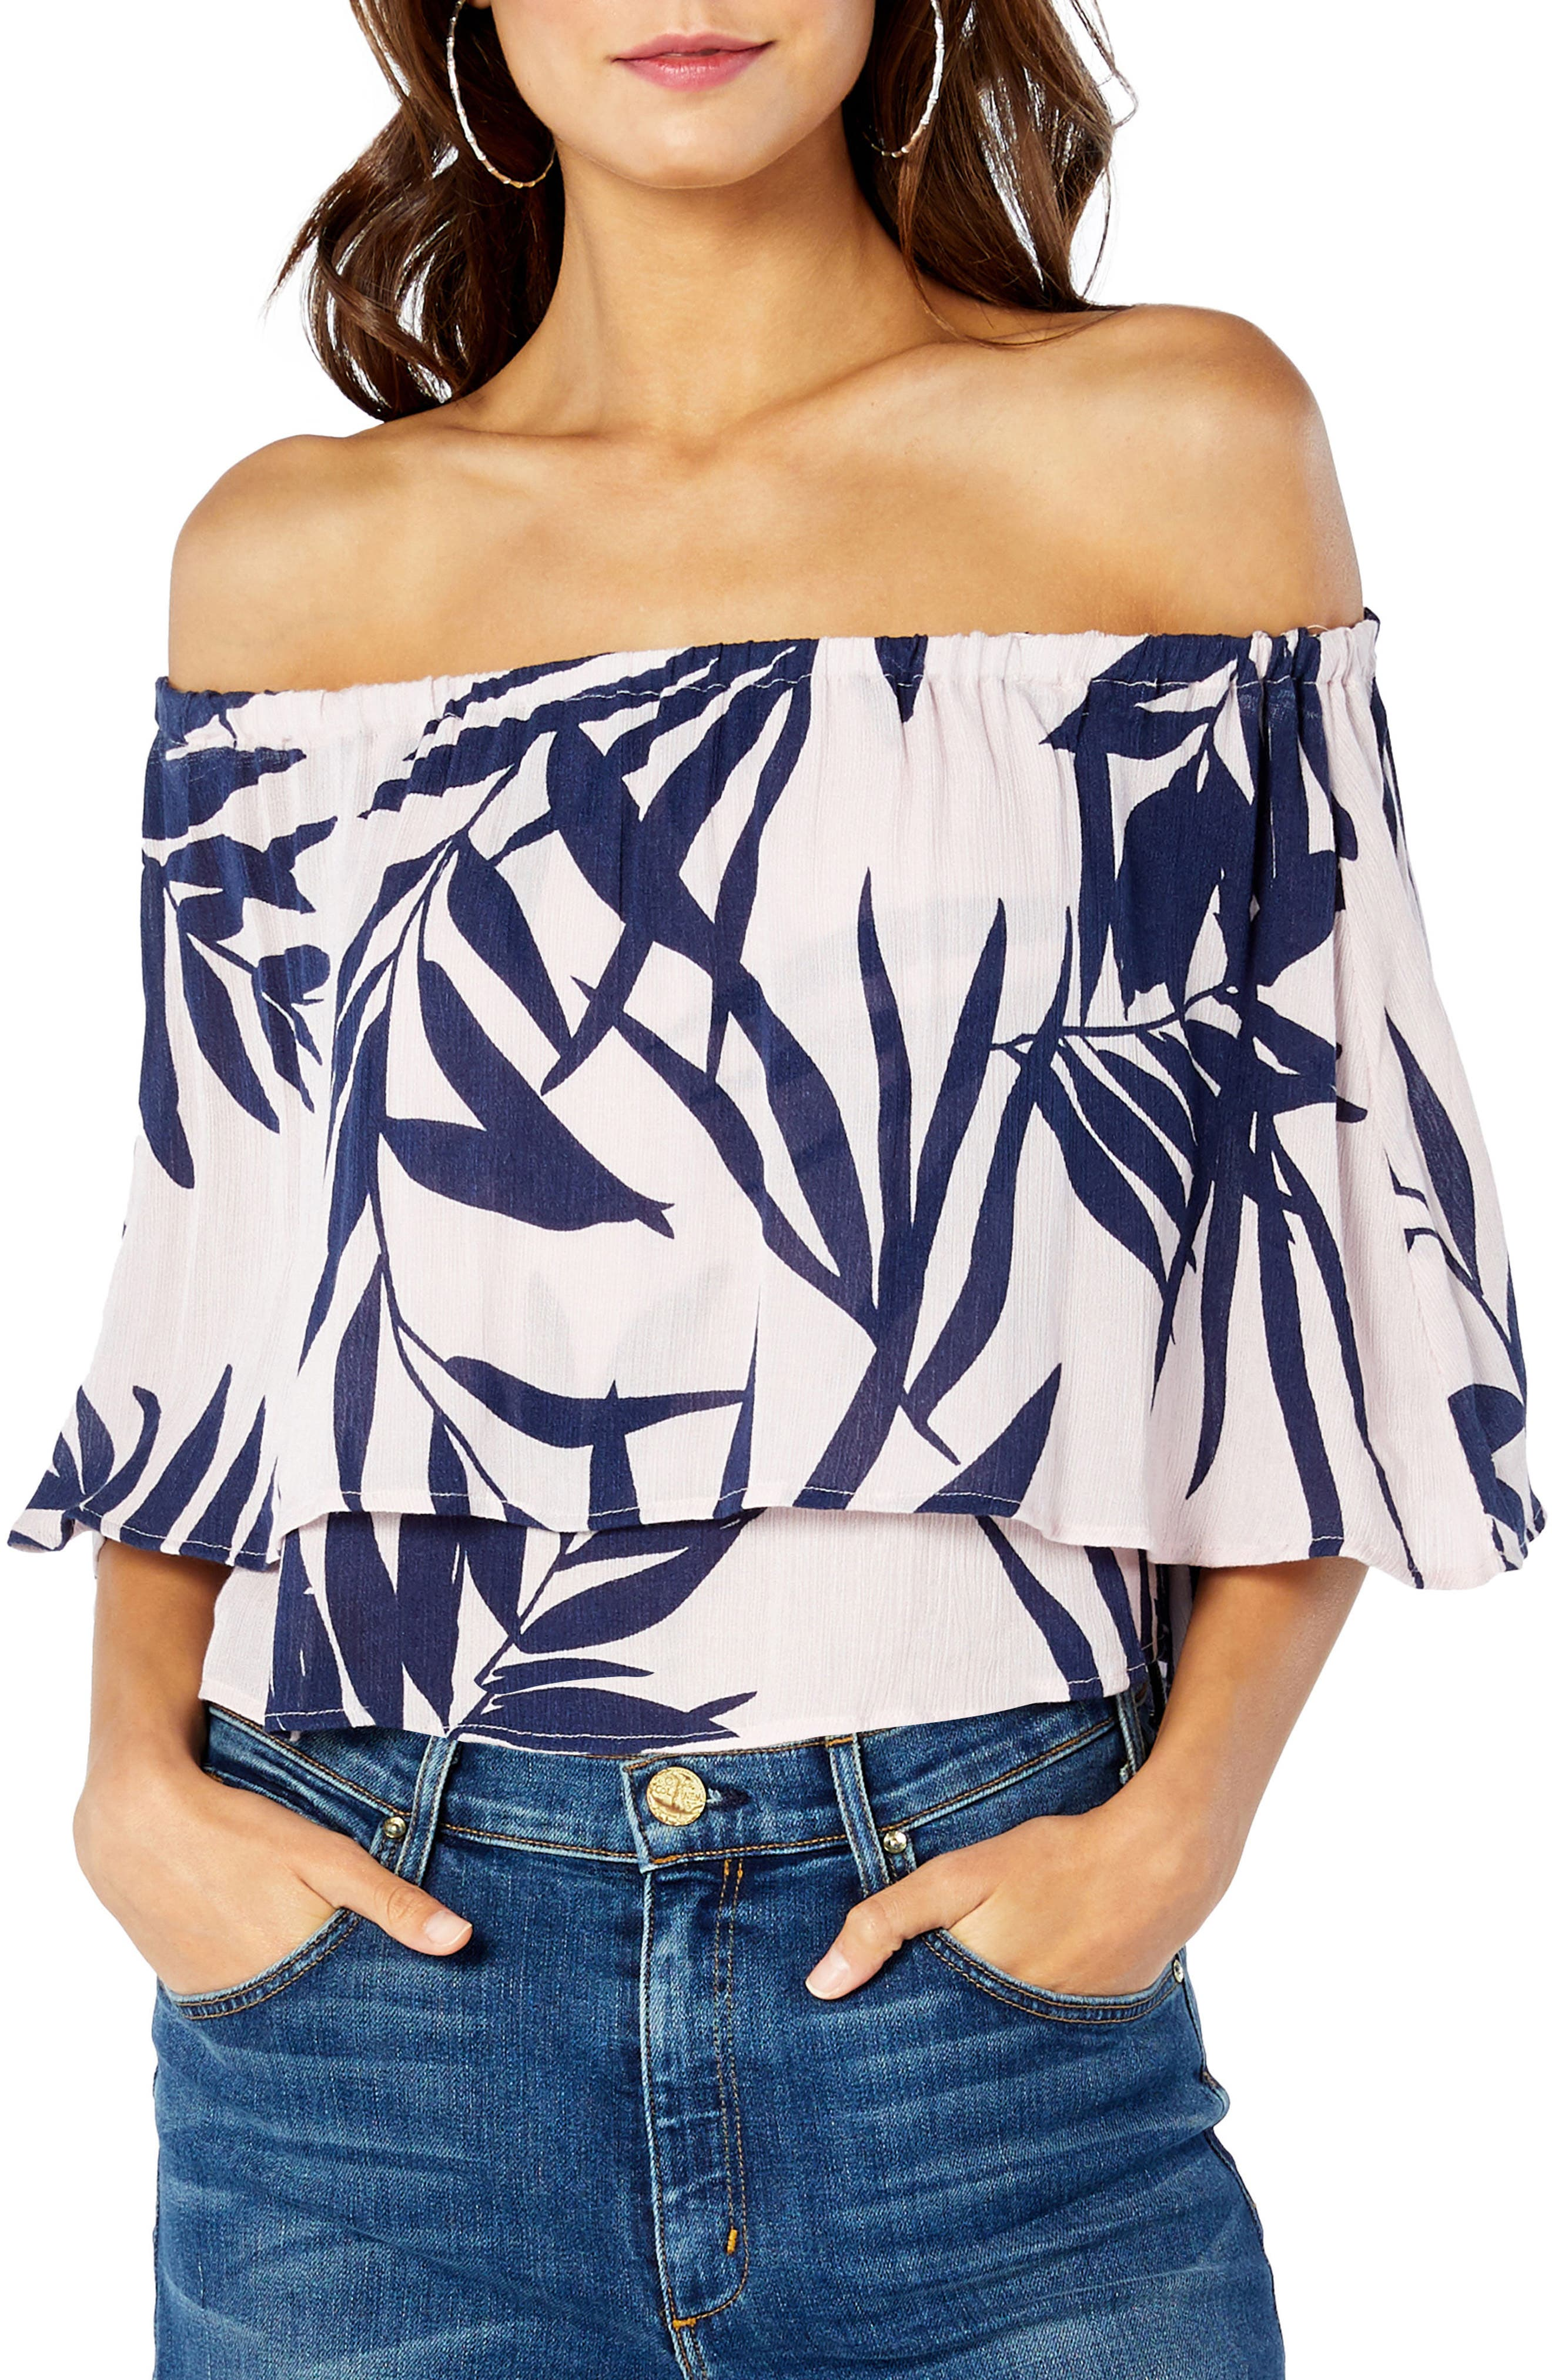 Paradiso Convertible Top,                             Alternate thumbnail 6, color,